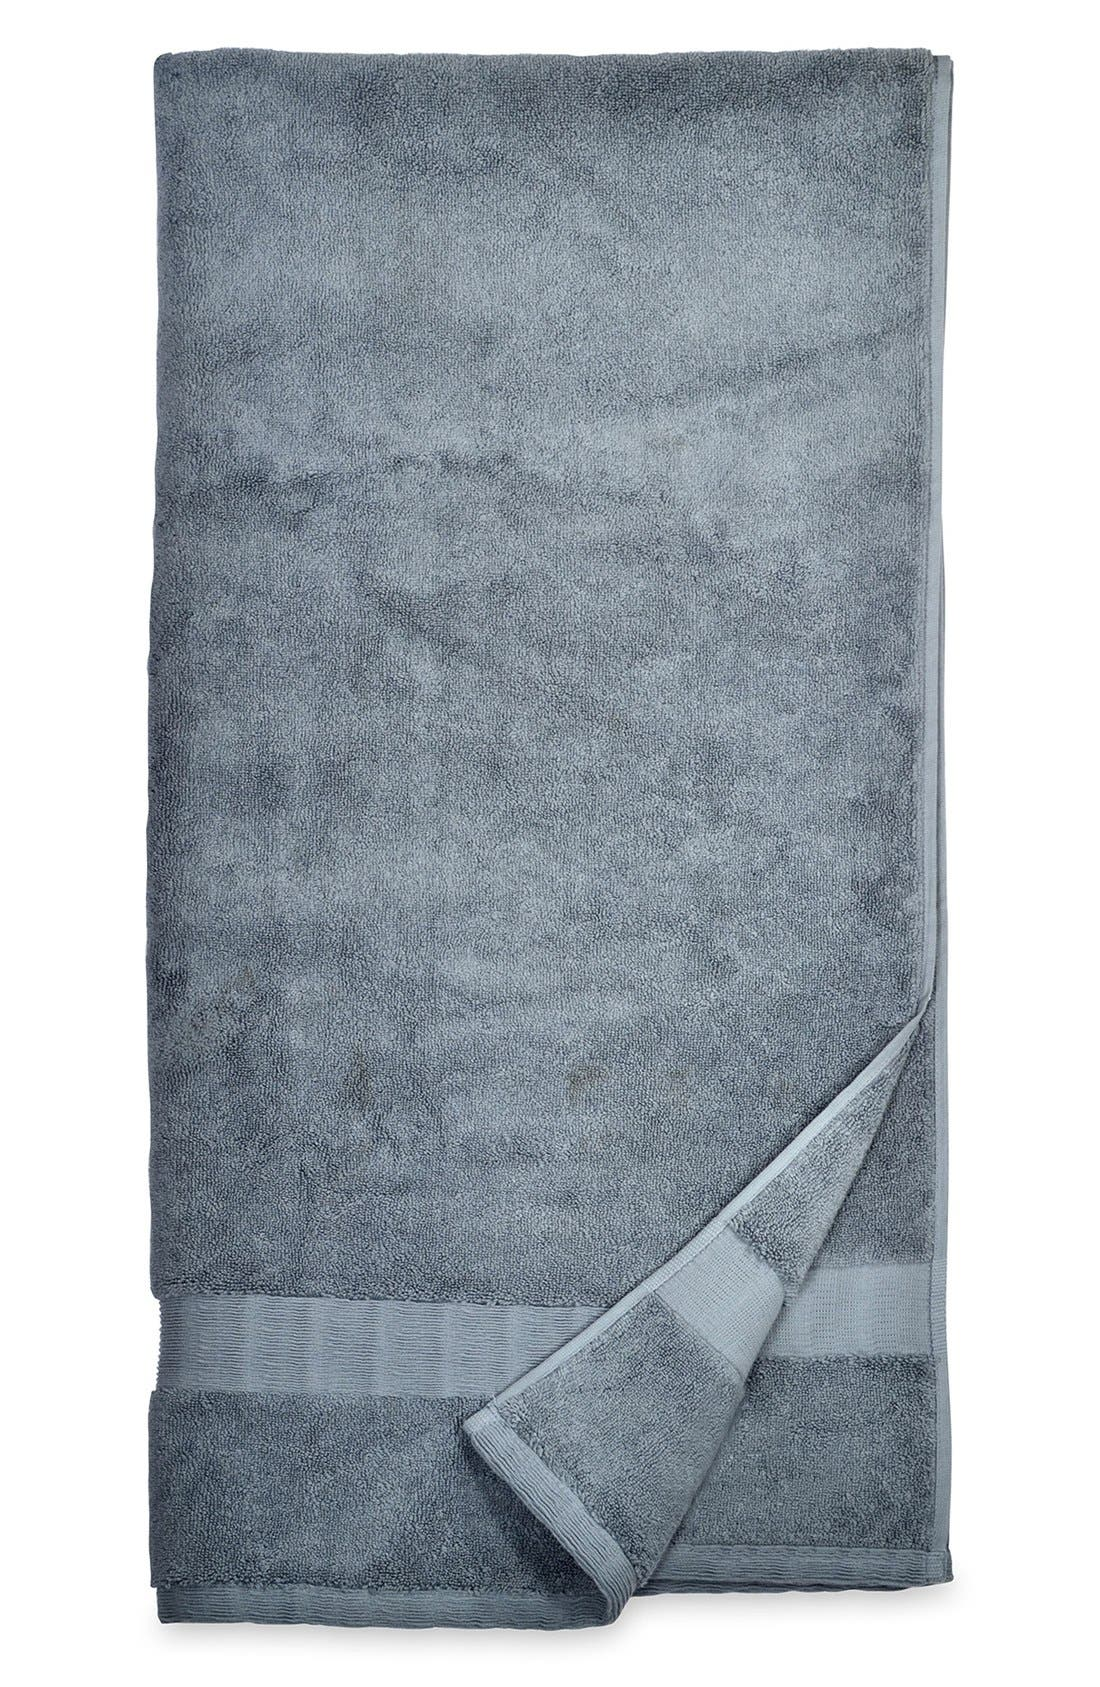 DKNY Mercer Bath Towel